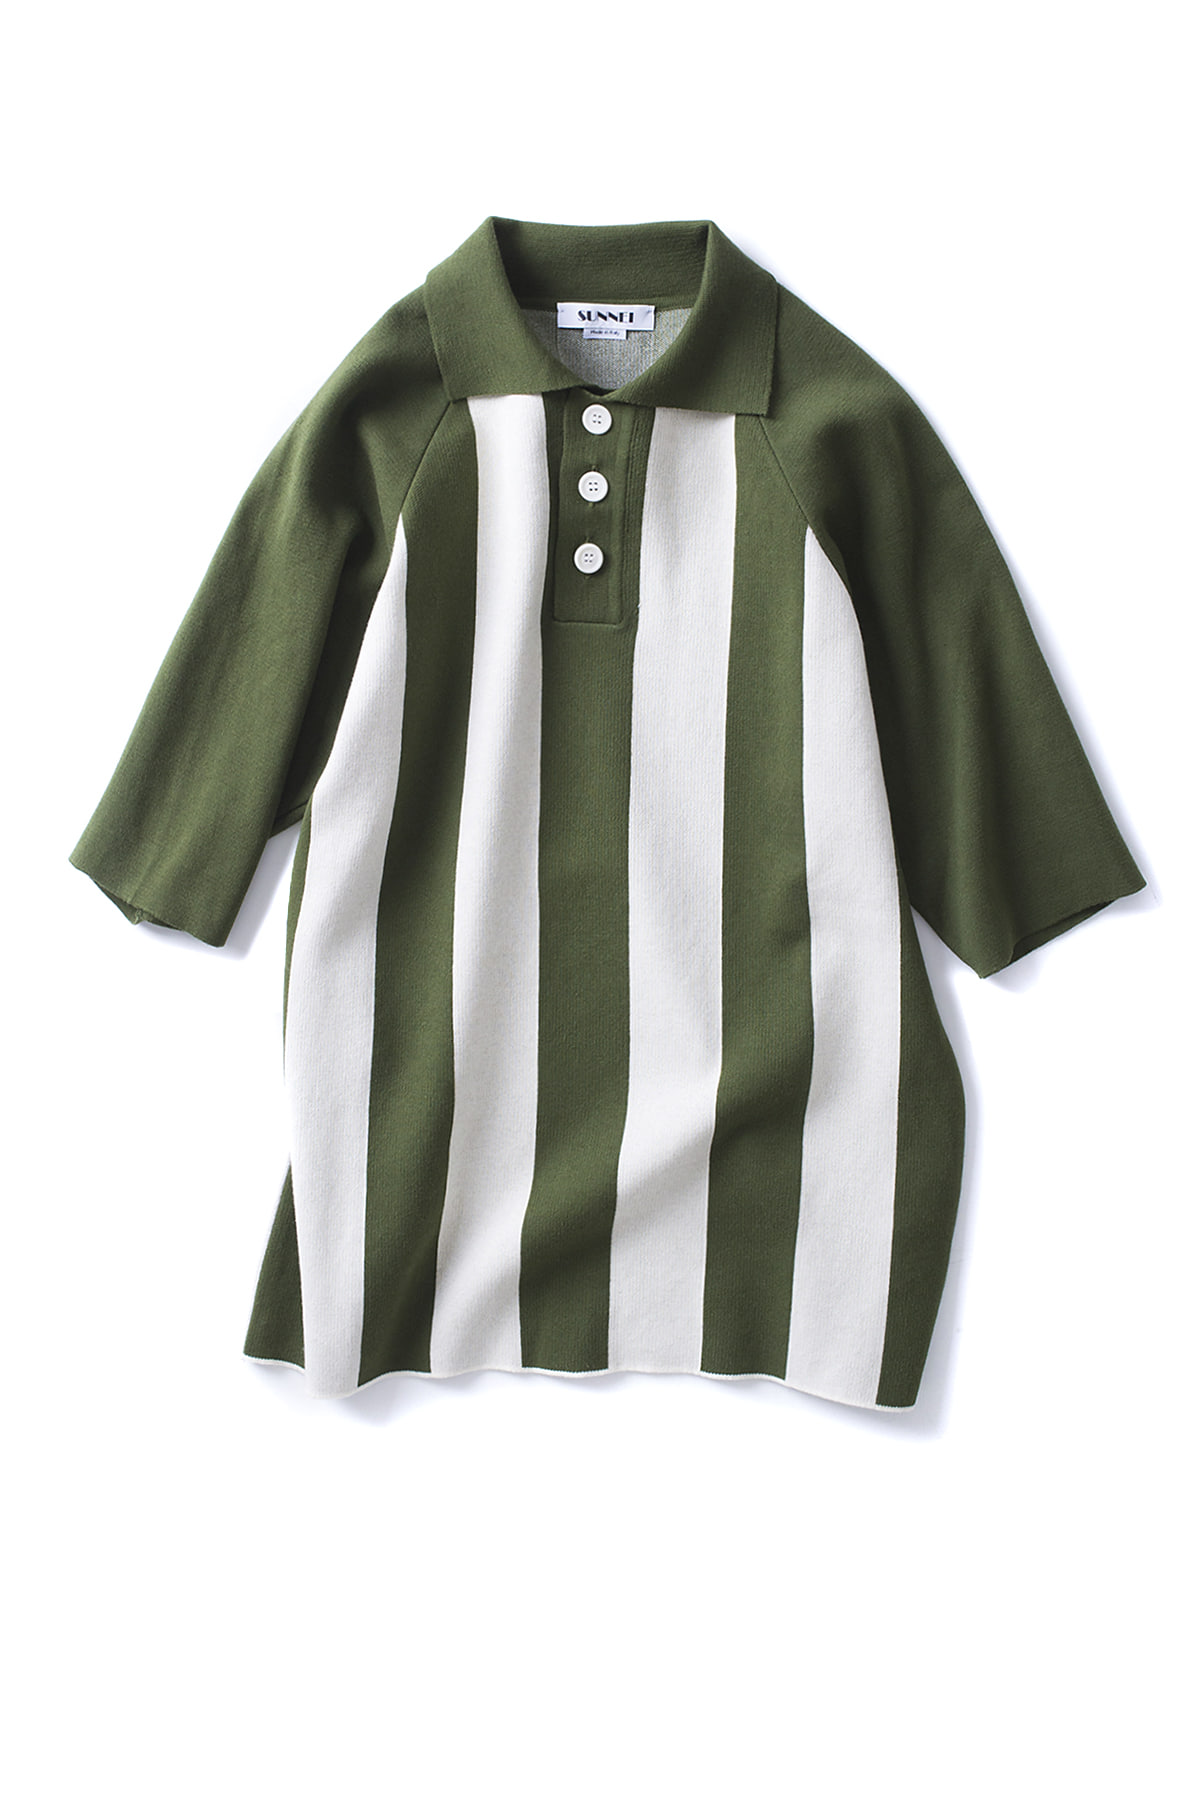 SUNNEI : Polo Shirt (Green)